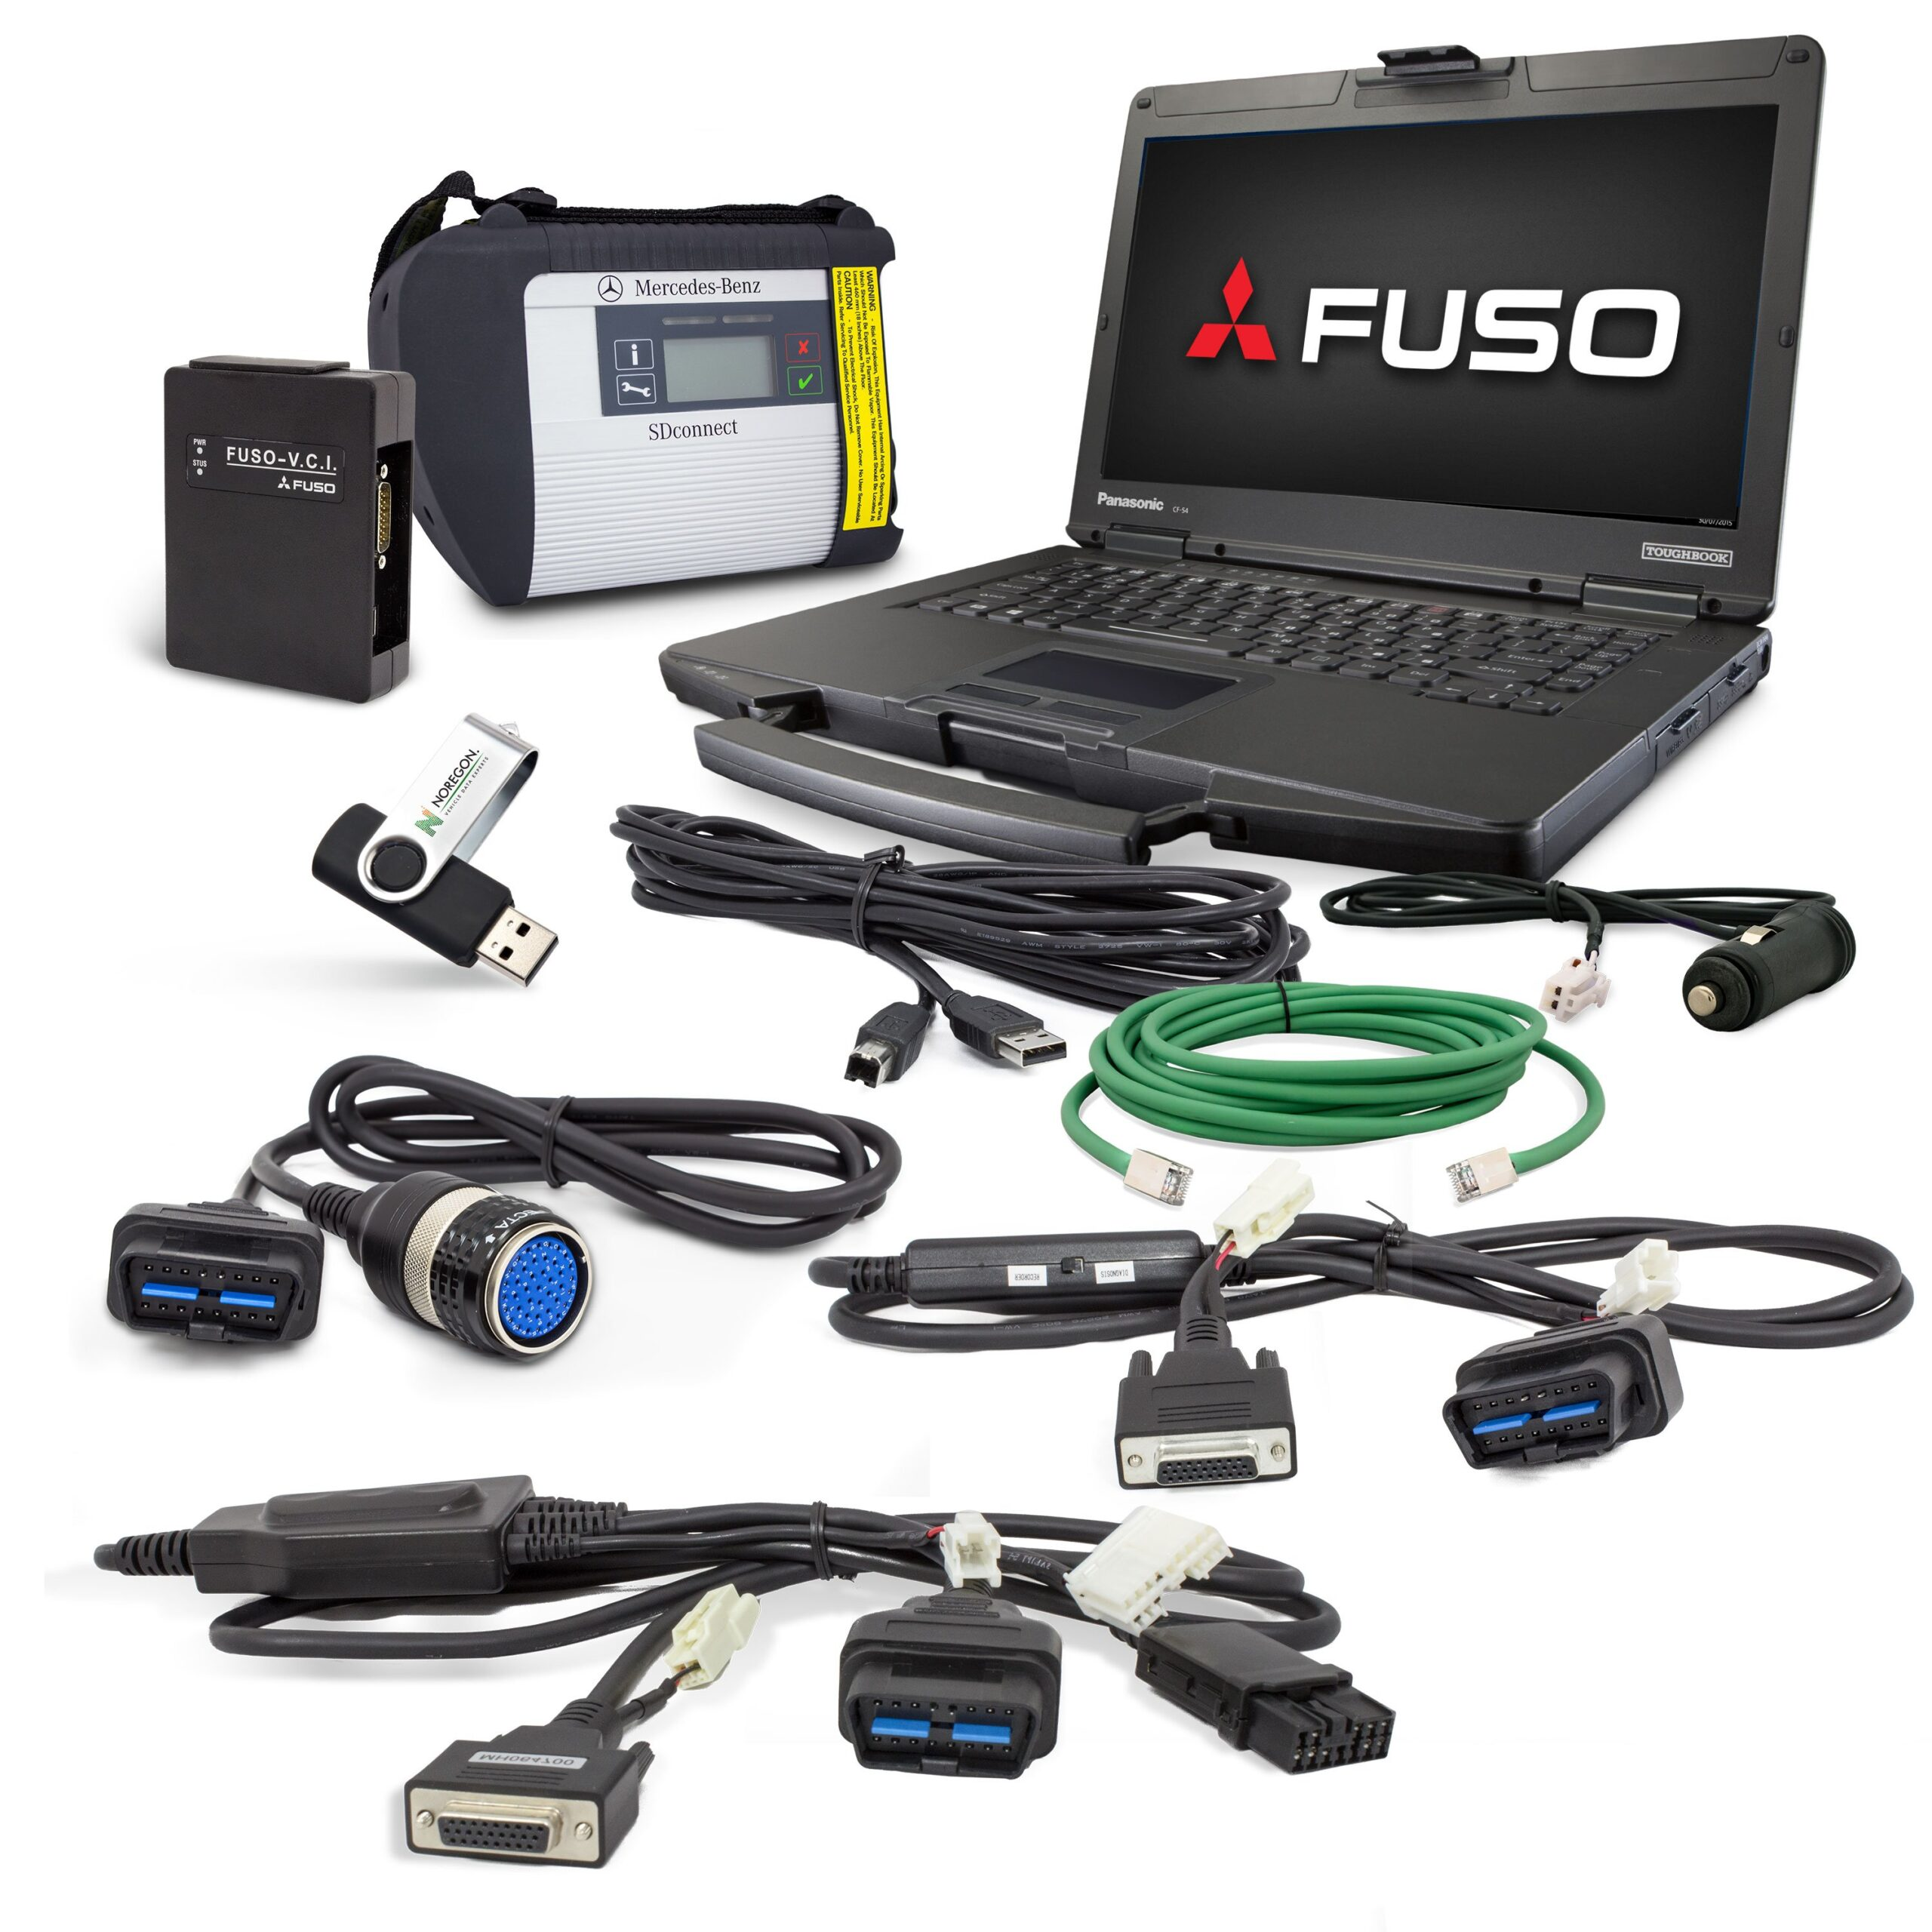 Mitsubishi MUT-III 2019 releases 1 XENTRY and M.U.T. III Diagnostics Kit with Laptop Option 2A 1 scaled